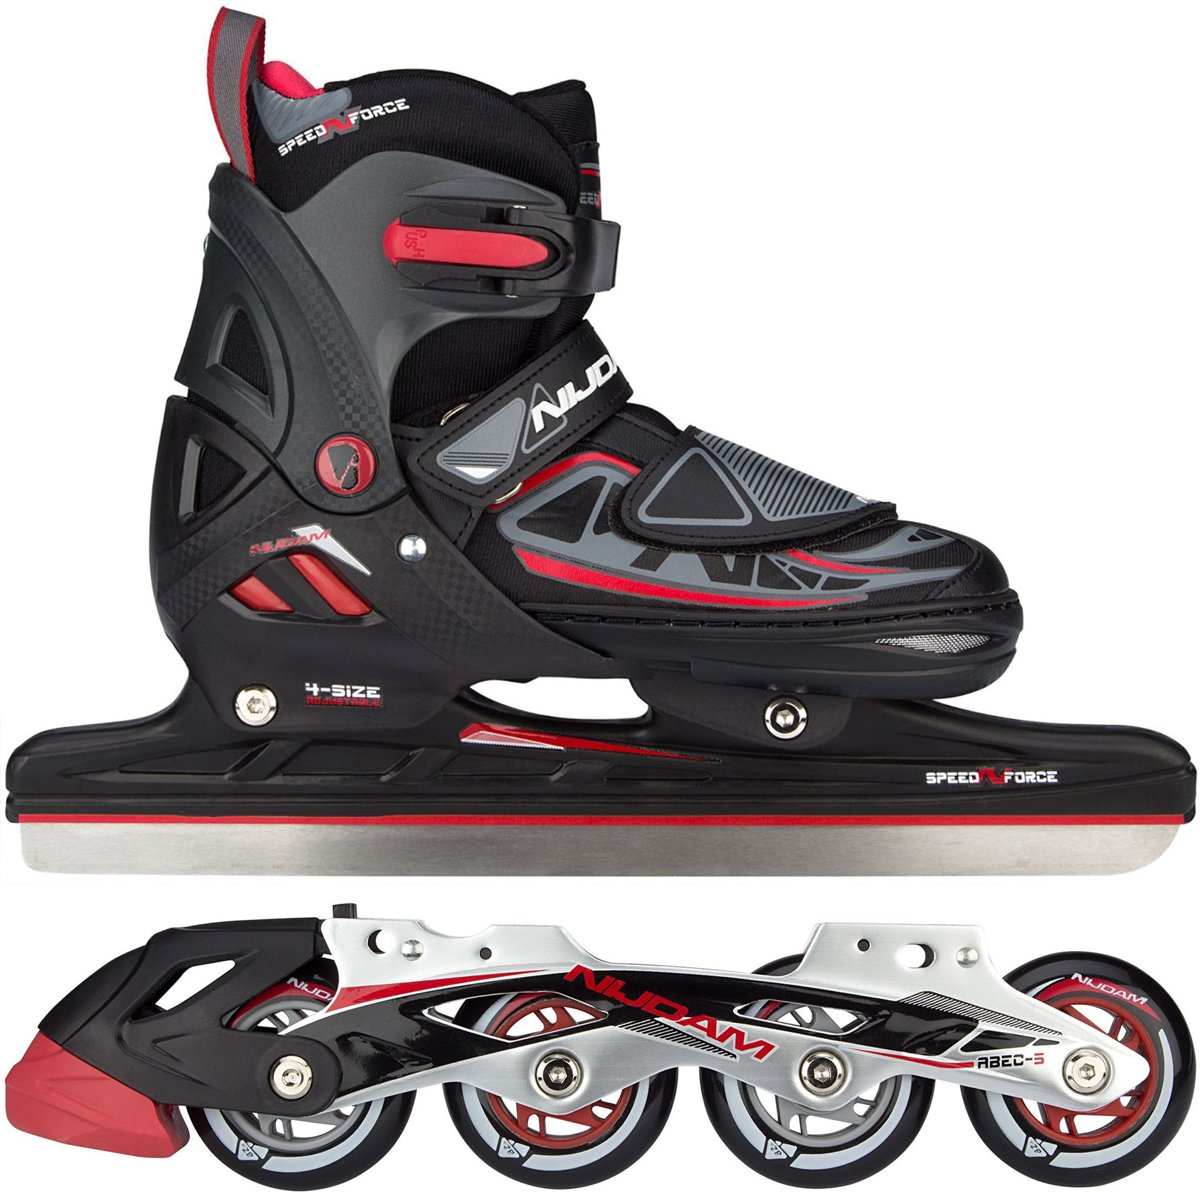 NORENSCHAATS/SKATE COMBO JUNIOR • SEMI-SOFTBOOT • N-FORCE I - Zwart/Rood/Antraciet - Maat 29-32